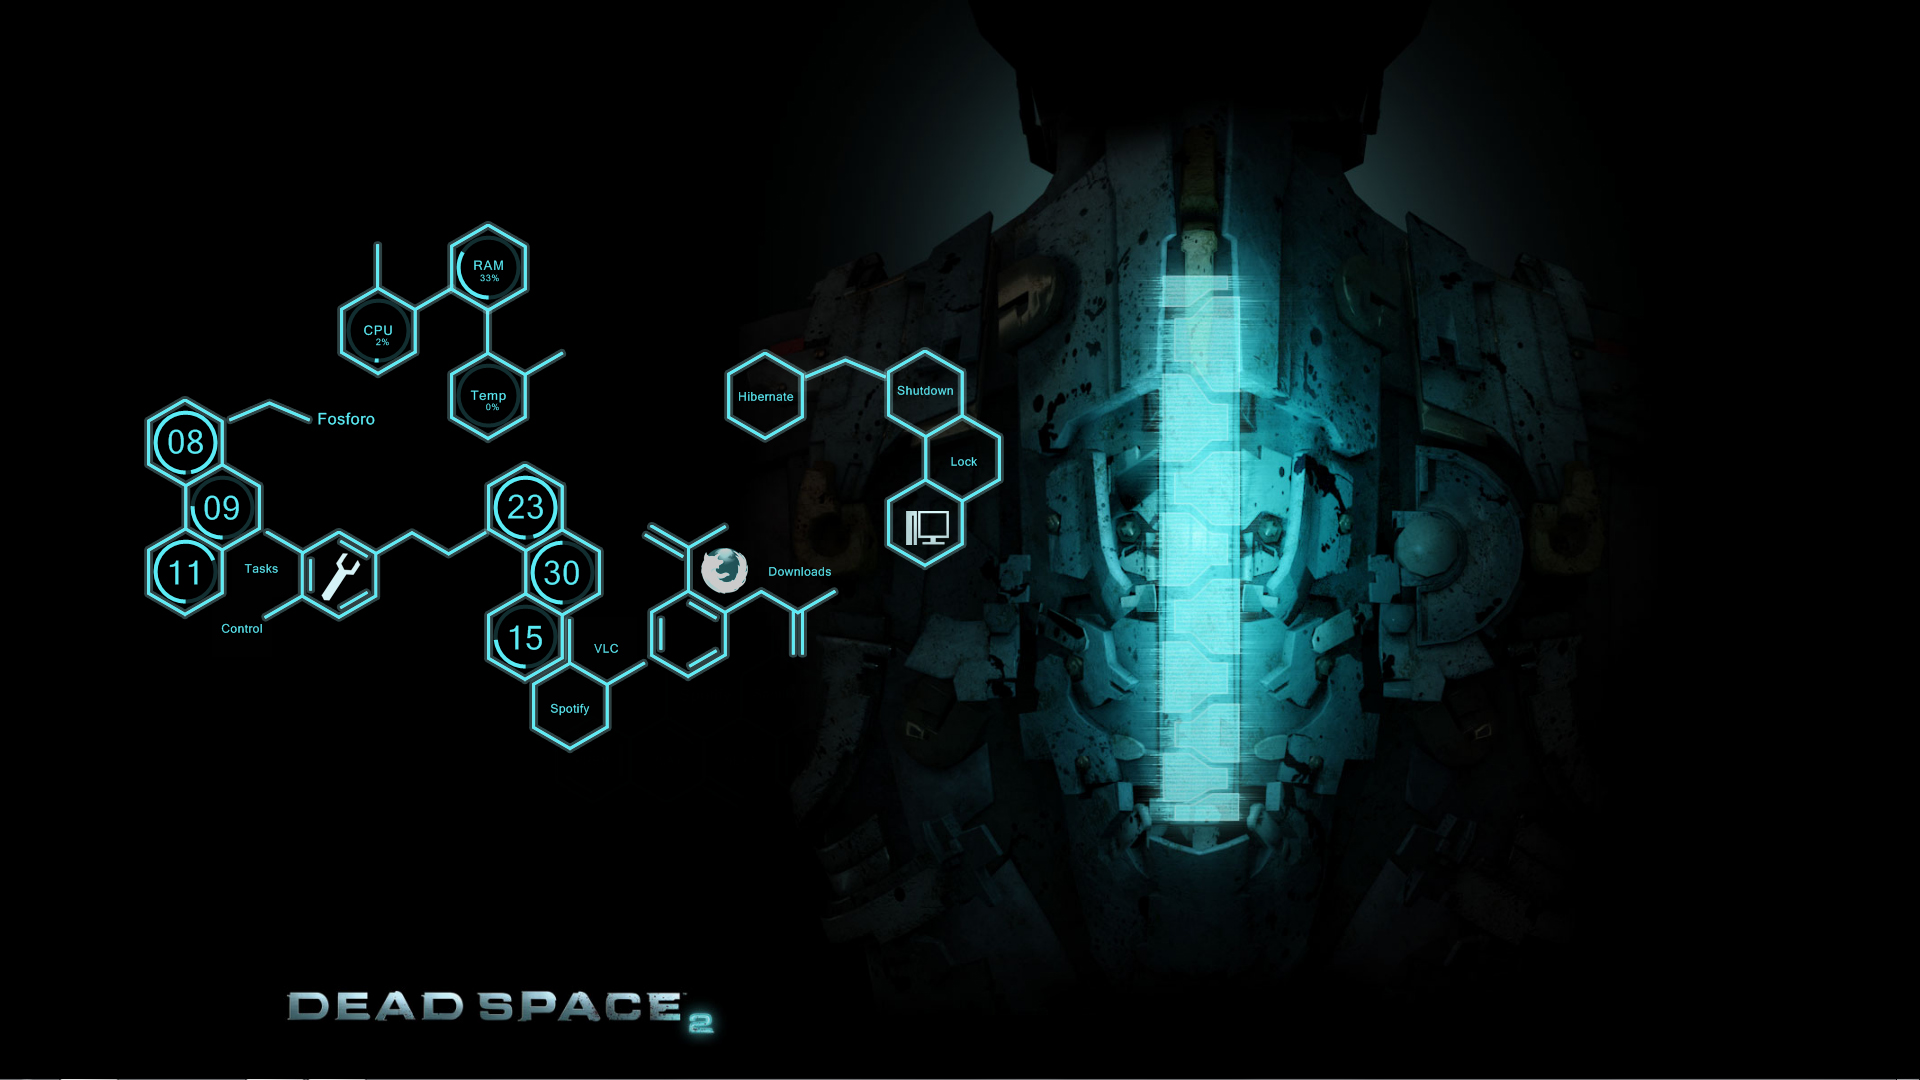 Dead Space Wallpaper 1920x1080 Dead, Space, 2, Rainmeter